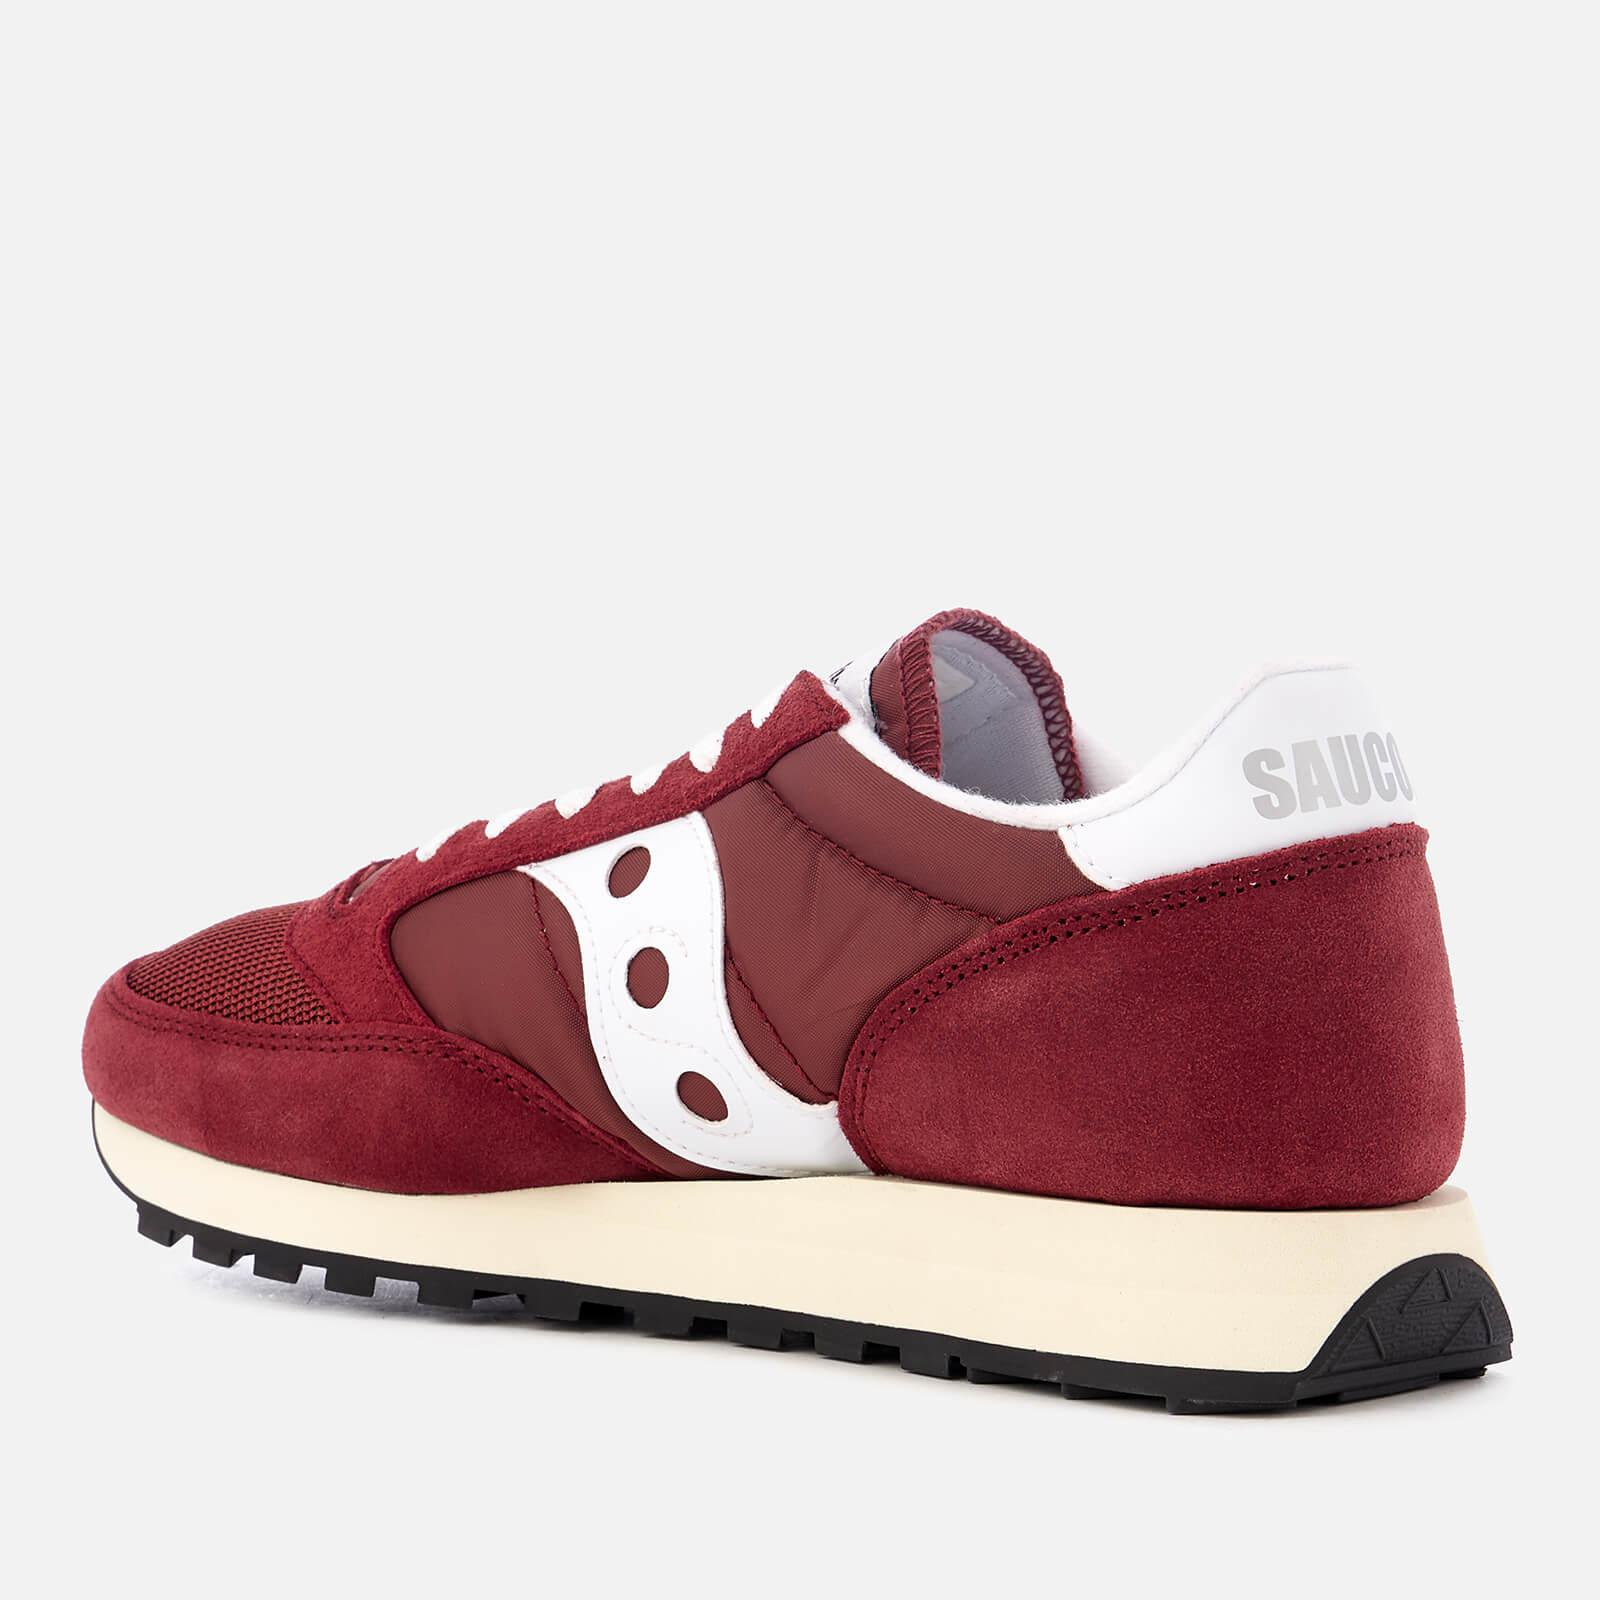 Saucony Suede Jazz Lowpro Sneaker in Burgundy/White (Red)